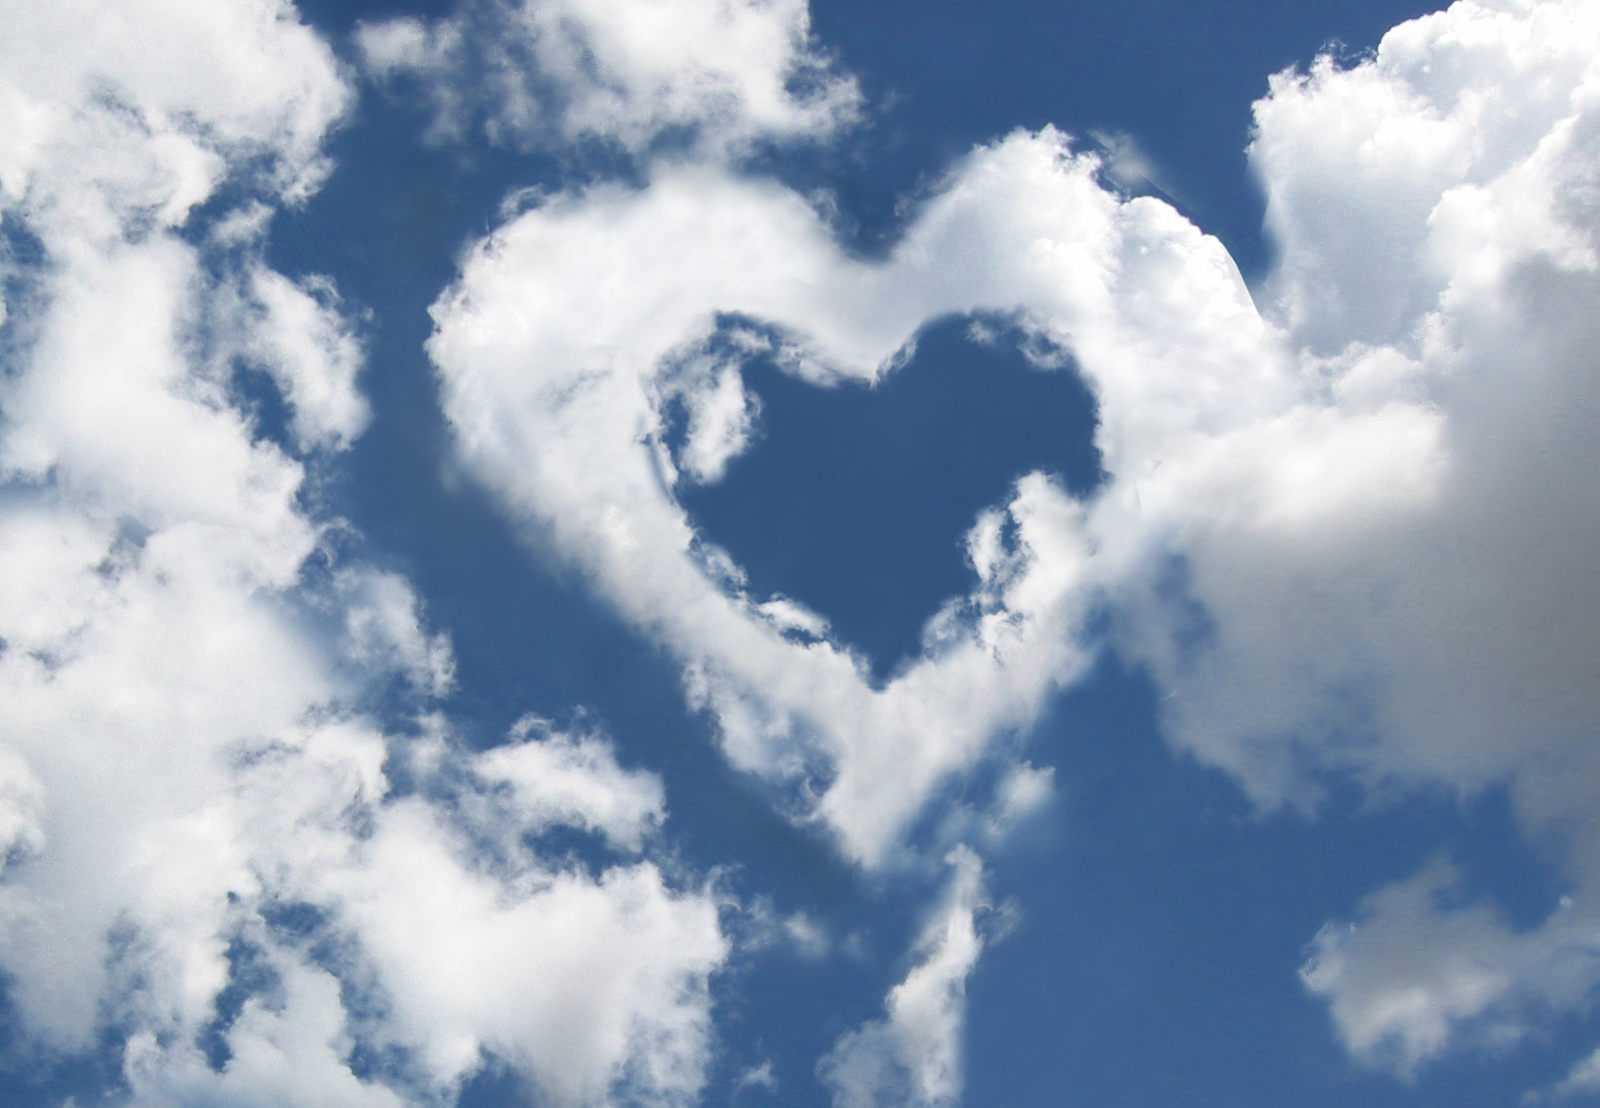 Clouds with heart shape